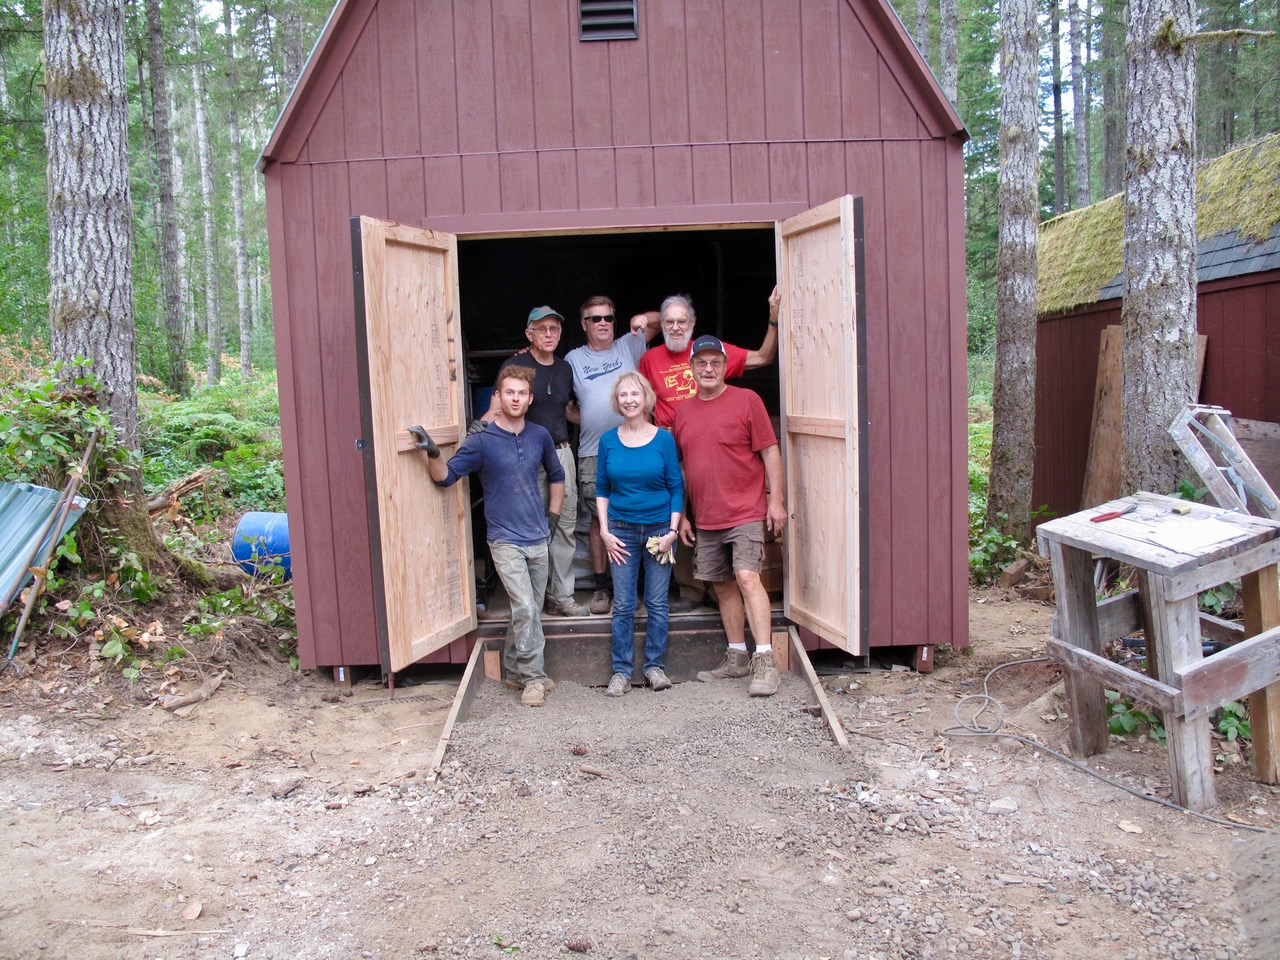 The final day, September 12, 2017. The shed is partly loaded, time for a quick photo. Next we will load in the steel tables, and remaining tents and tables. Thanks to Sharon Feeney, Ed Salerno, Steve Sandry, Leon White, Kirk Mclean, and the Boss, Gene Carlson.